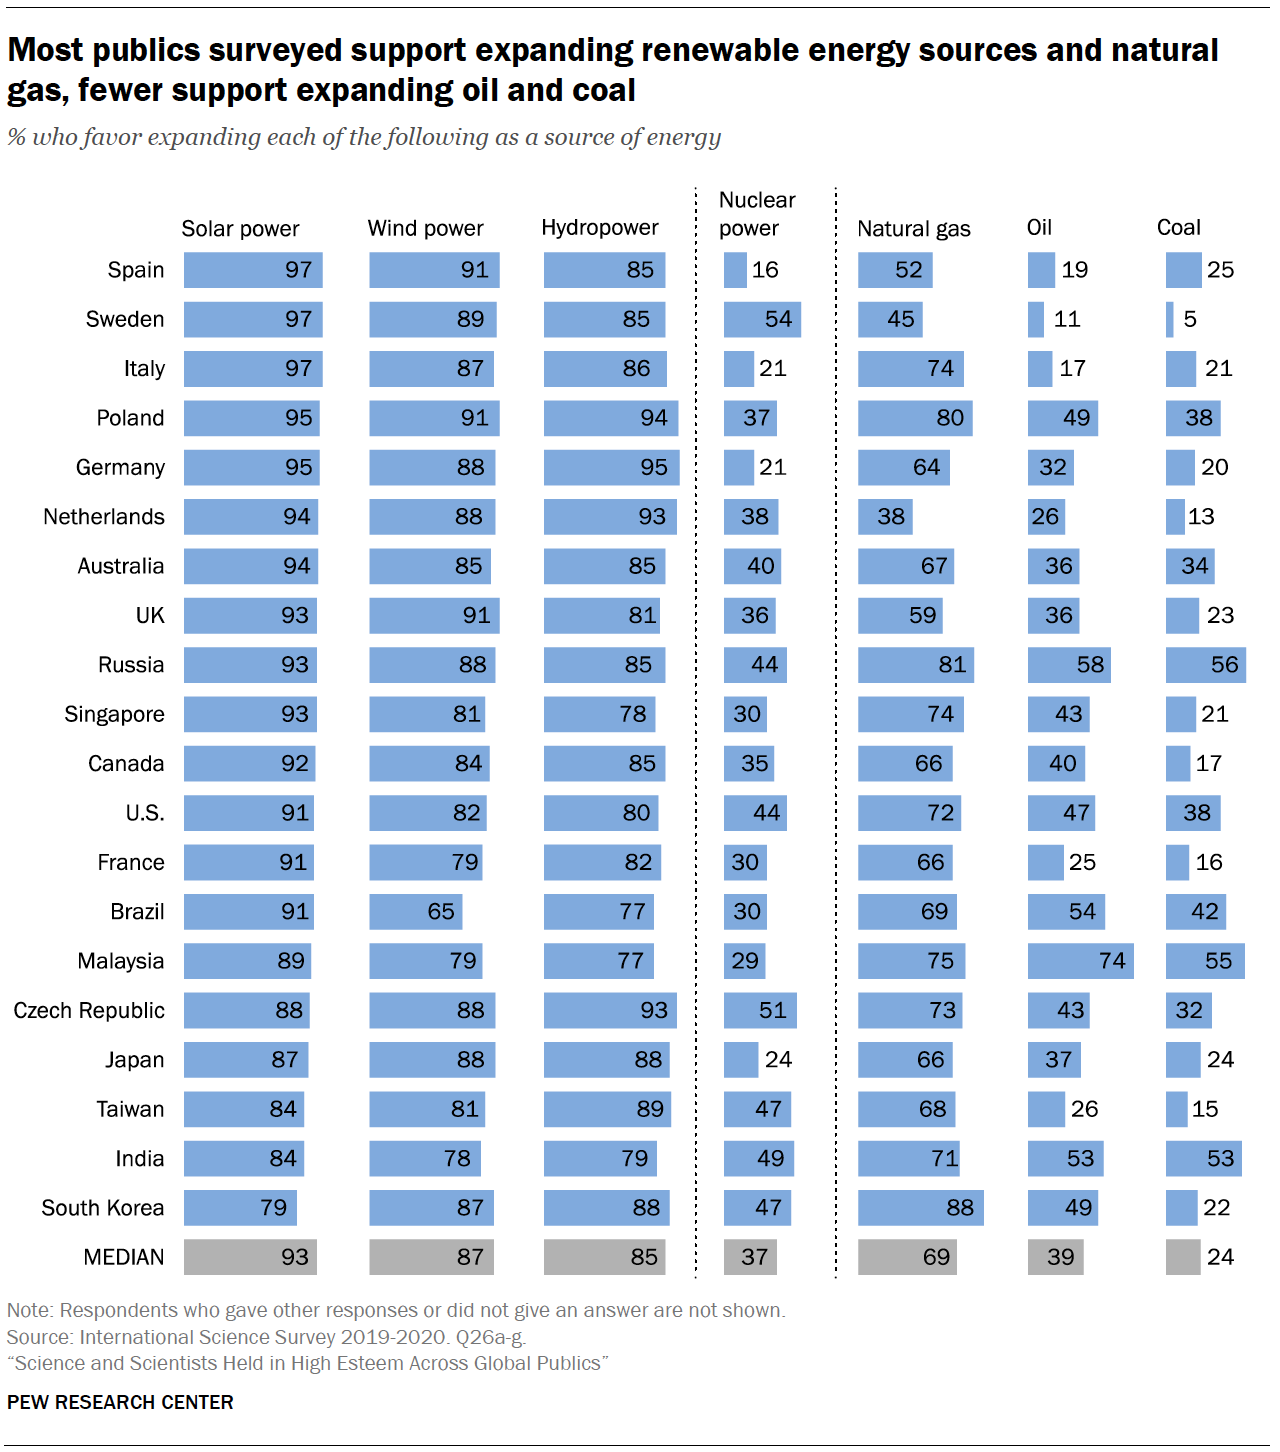 Chart shows most publics surveyed support expanding renewable energy sources and natural gas, fewer support expanding oil and coal